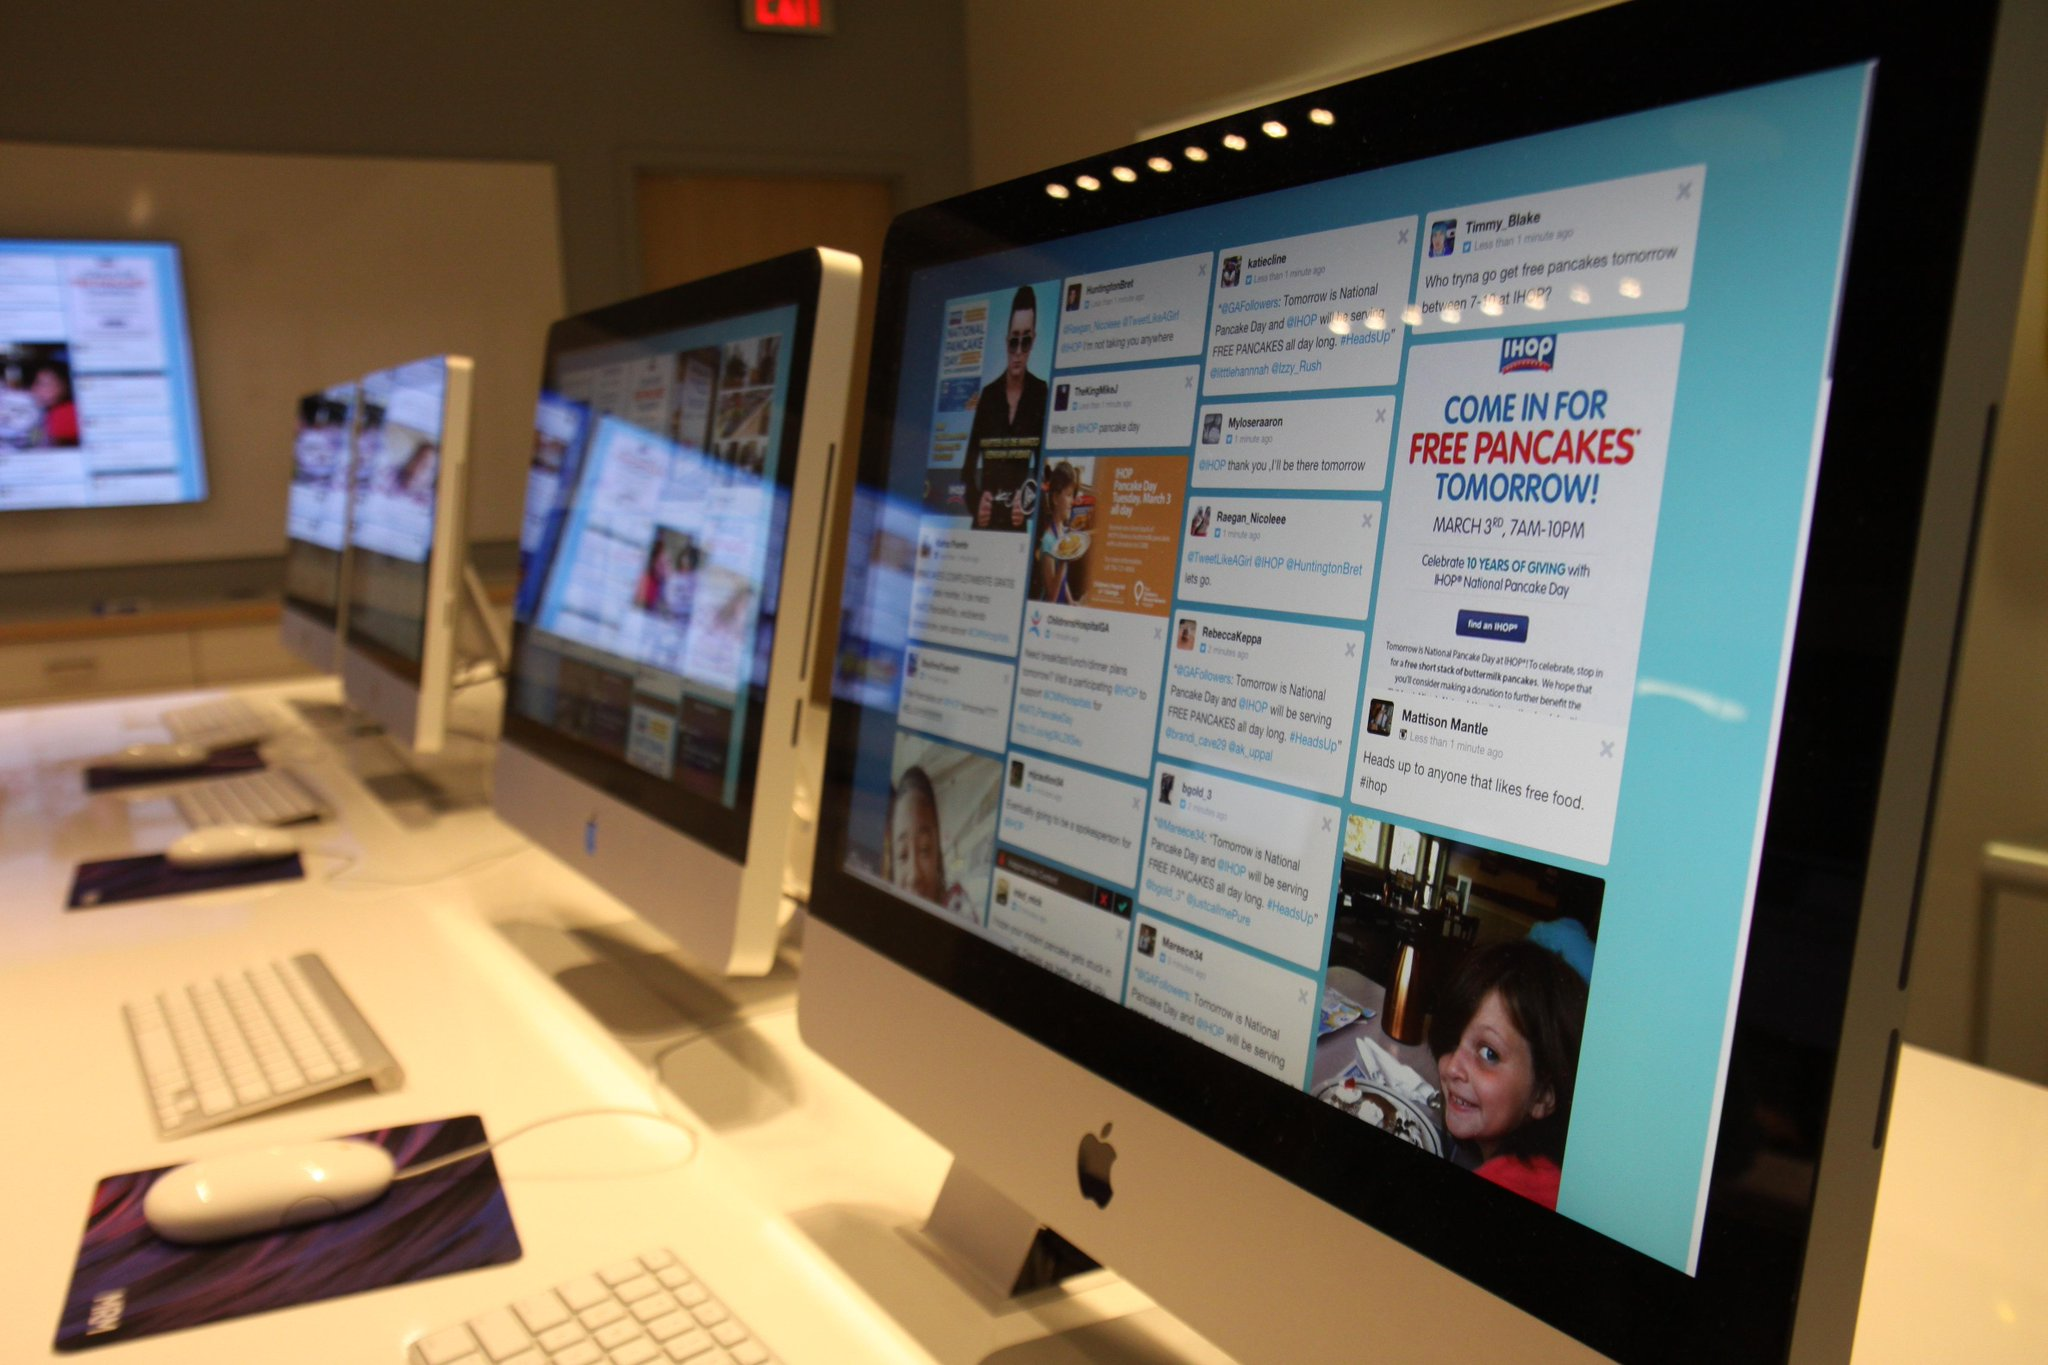 The @IHOP social media newsroom is ready for tomorrow's #NATLPancakeDay celebrations. Are you? http://t.co/6xZGvRLkbg http://t.co/G53Yzeo1zn